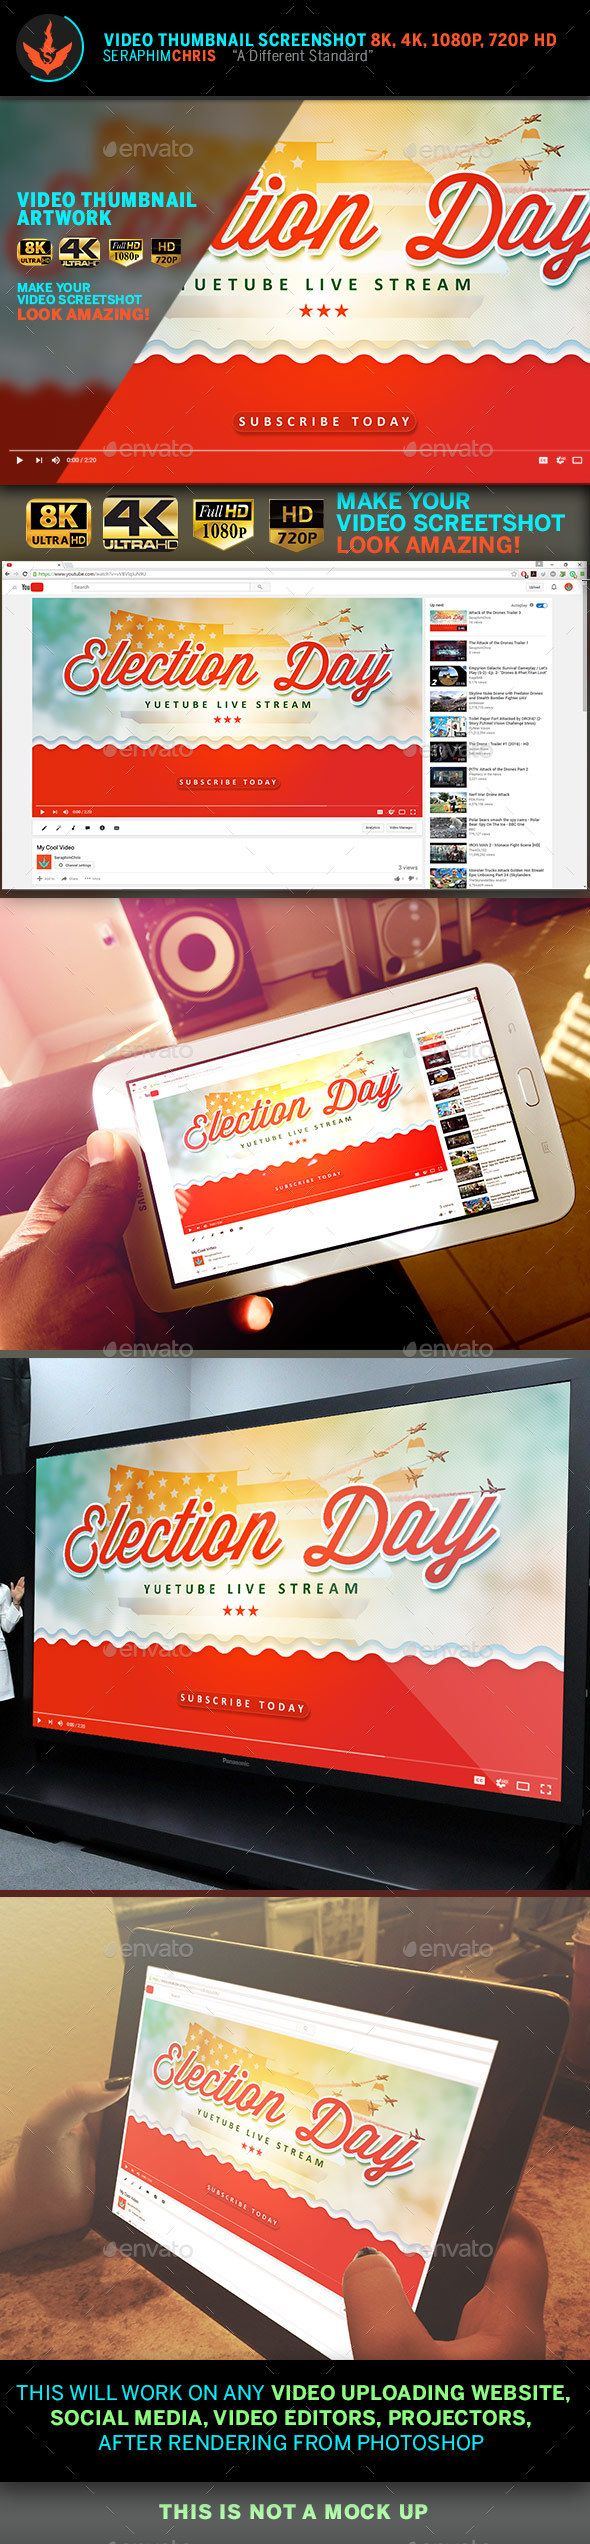 Political YouTube Video Thumbnail Screenshot Template 8